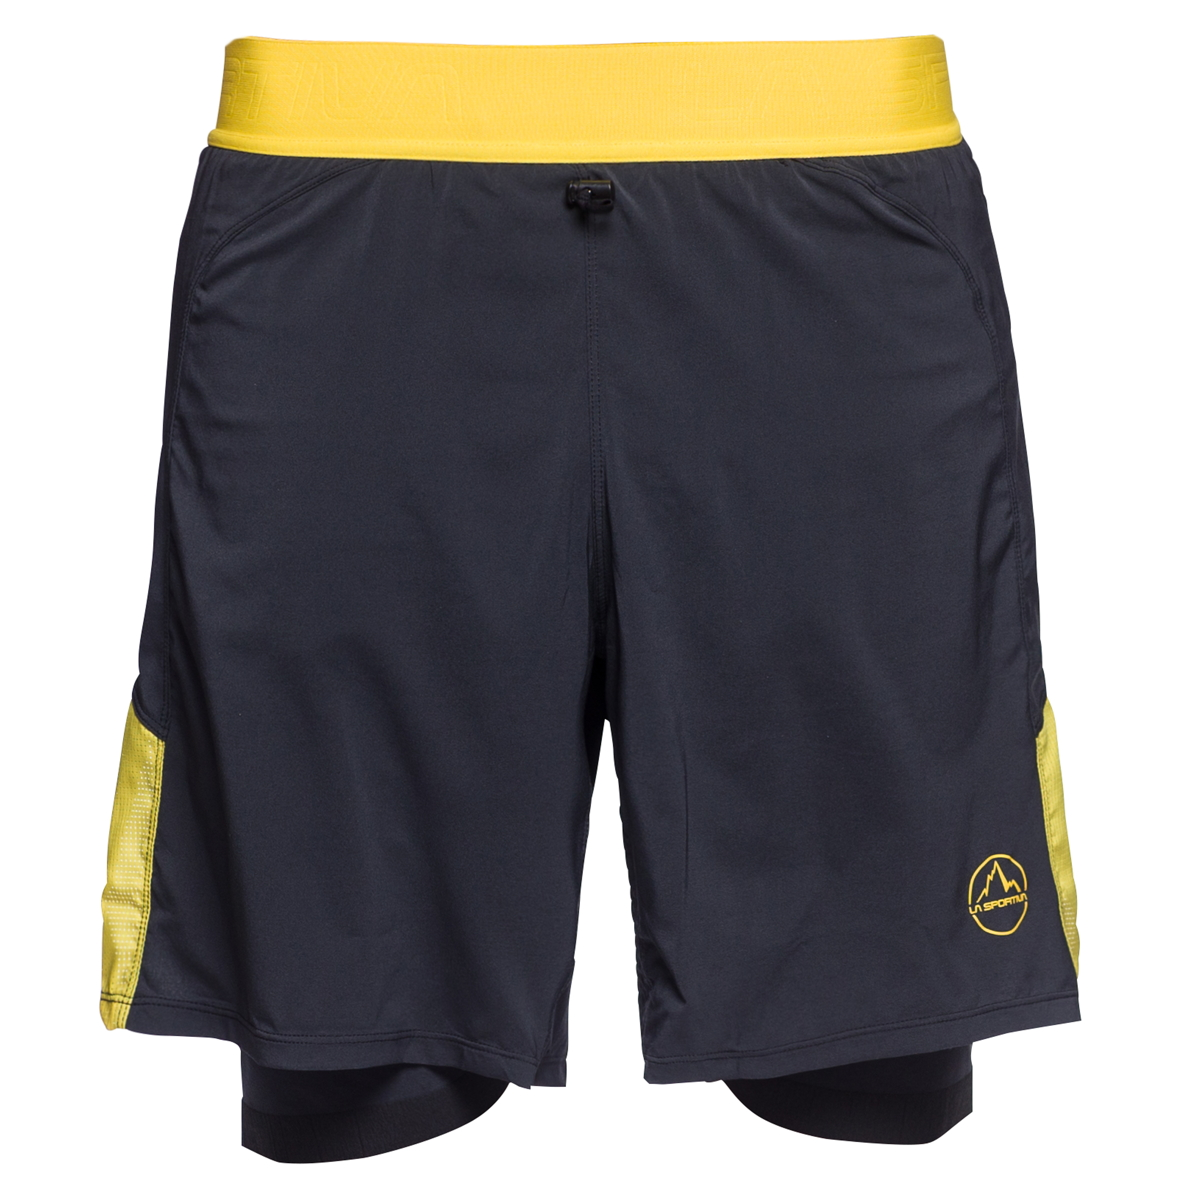 La Sportiva Velox Short / Black-Yellow